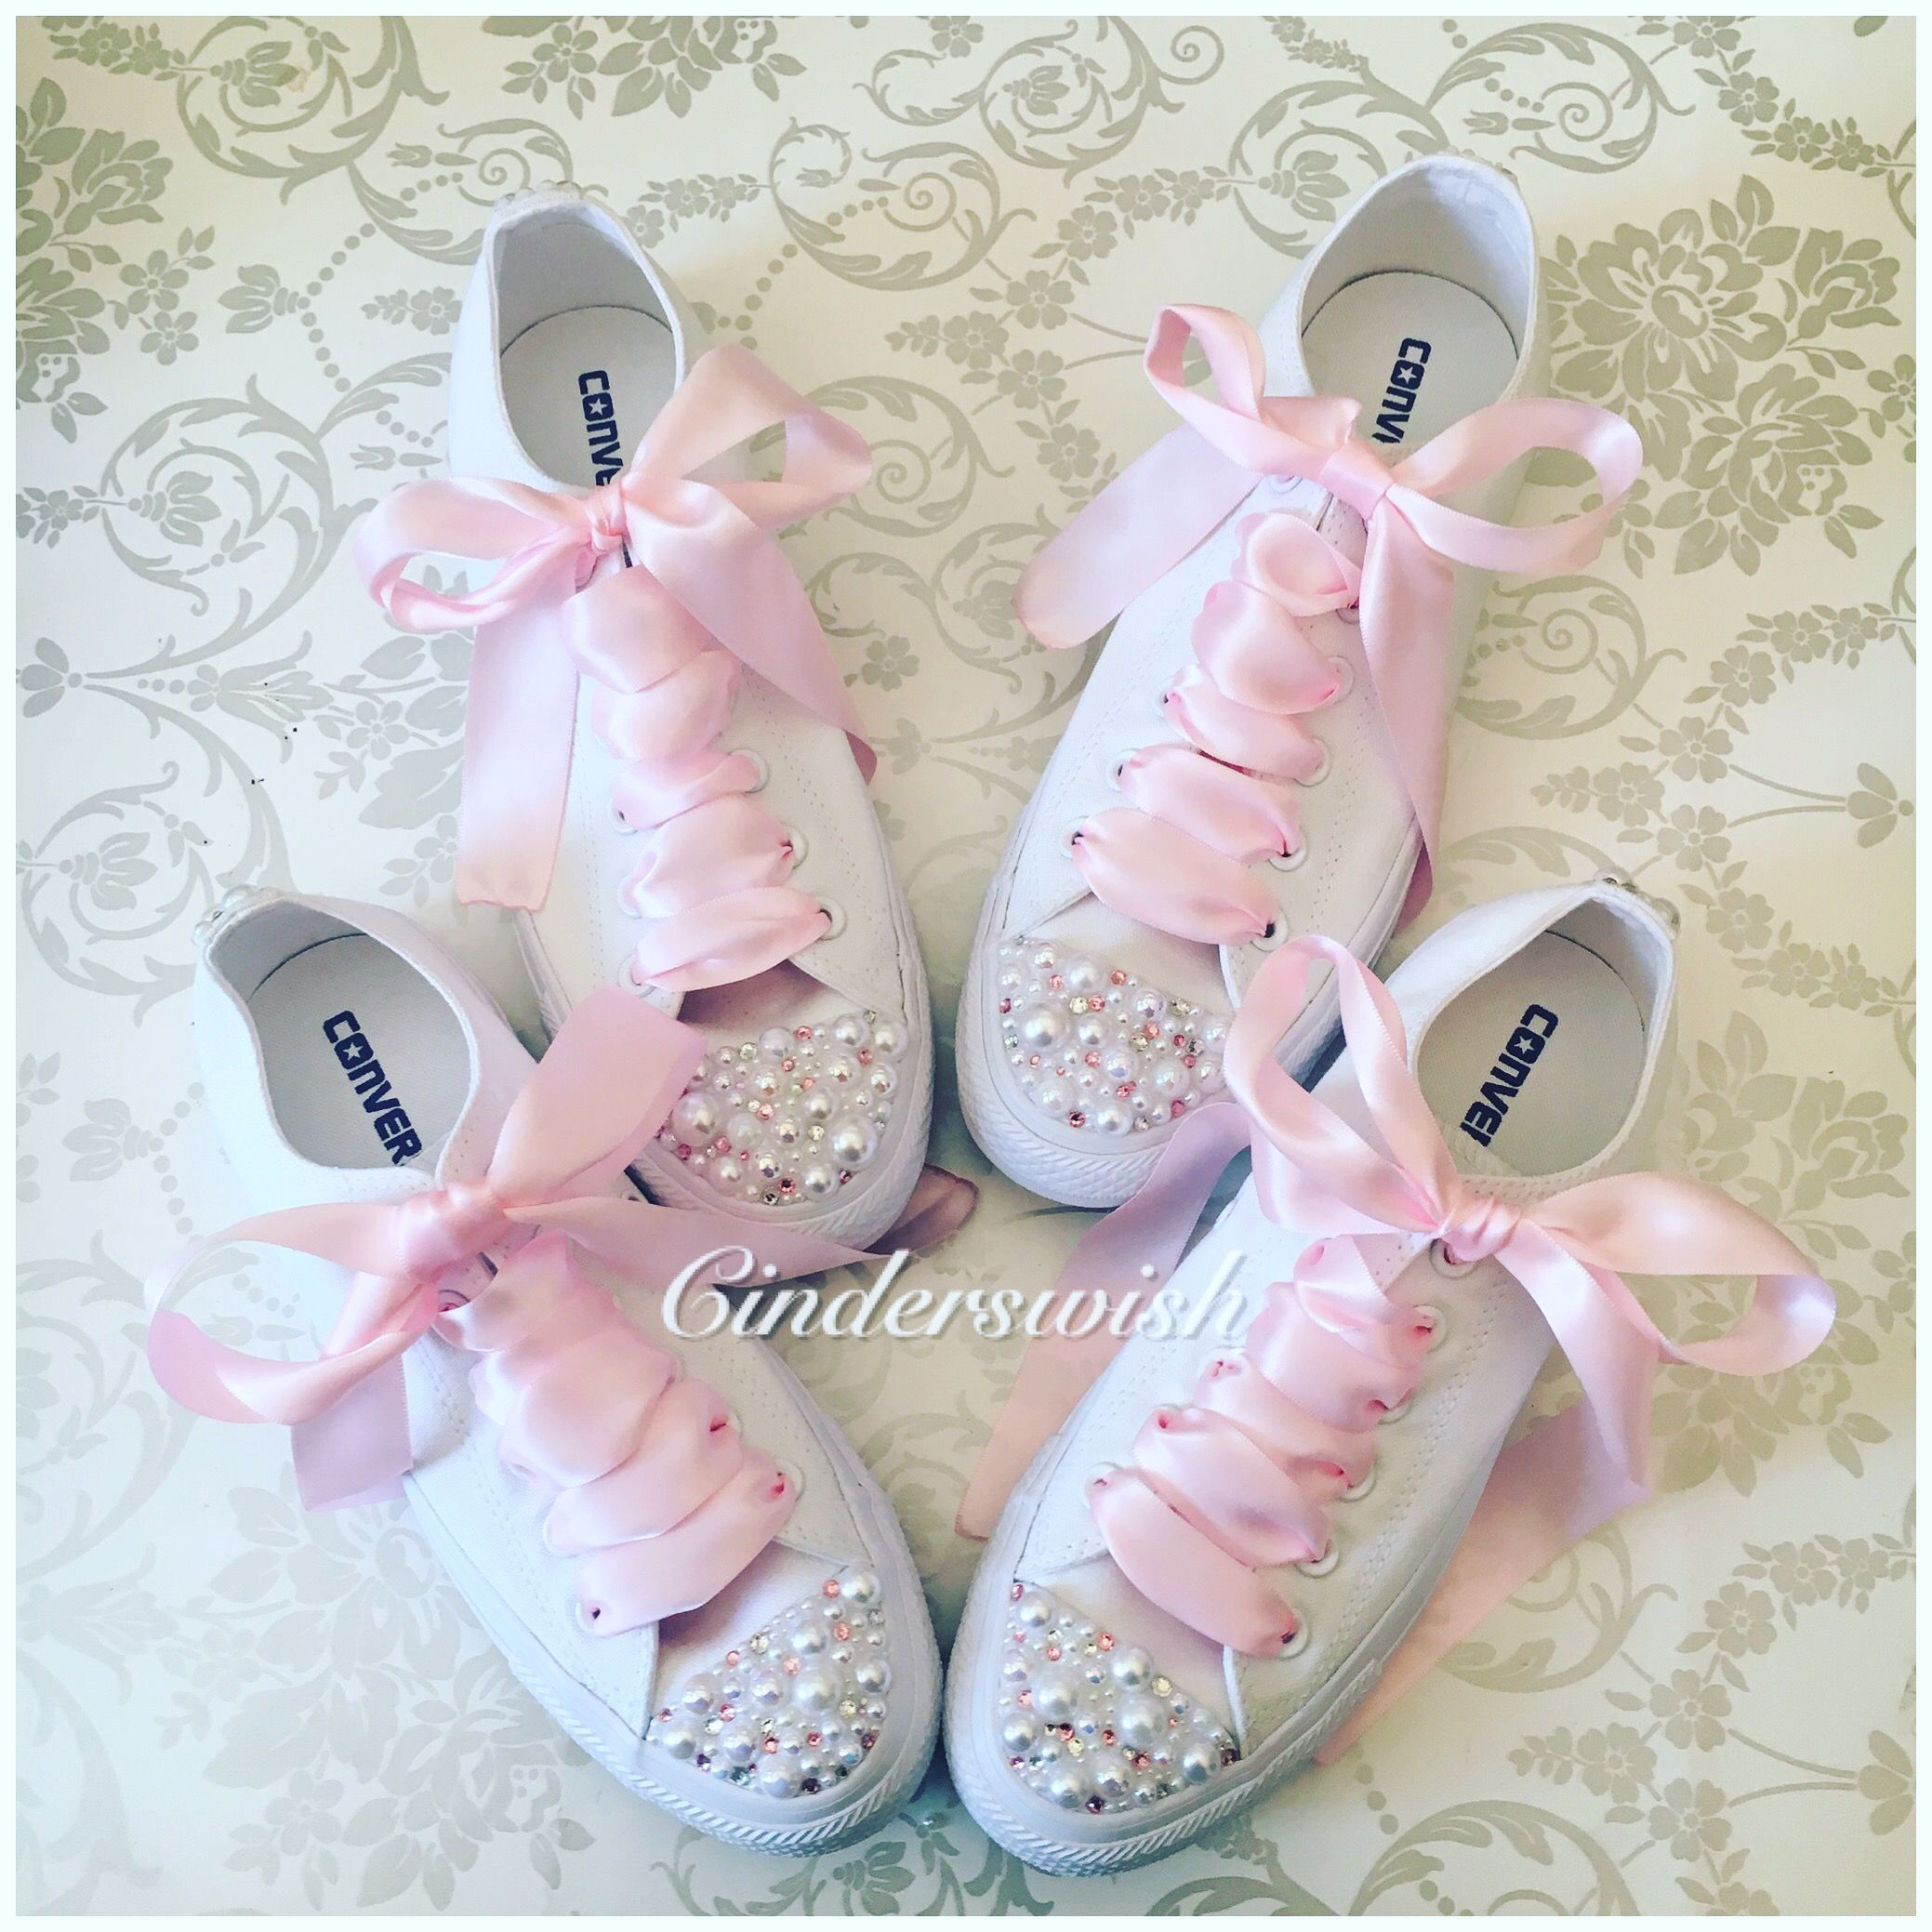 b70026dfb0f7 Matching Bridesmaids Customised Converse for a Show Stopping Wedding party!   bridesmaids  wedding  matching  weddingconverse  blingconverse  pink   white ...